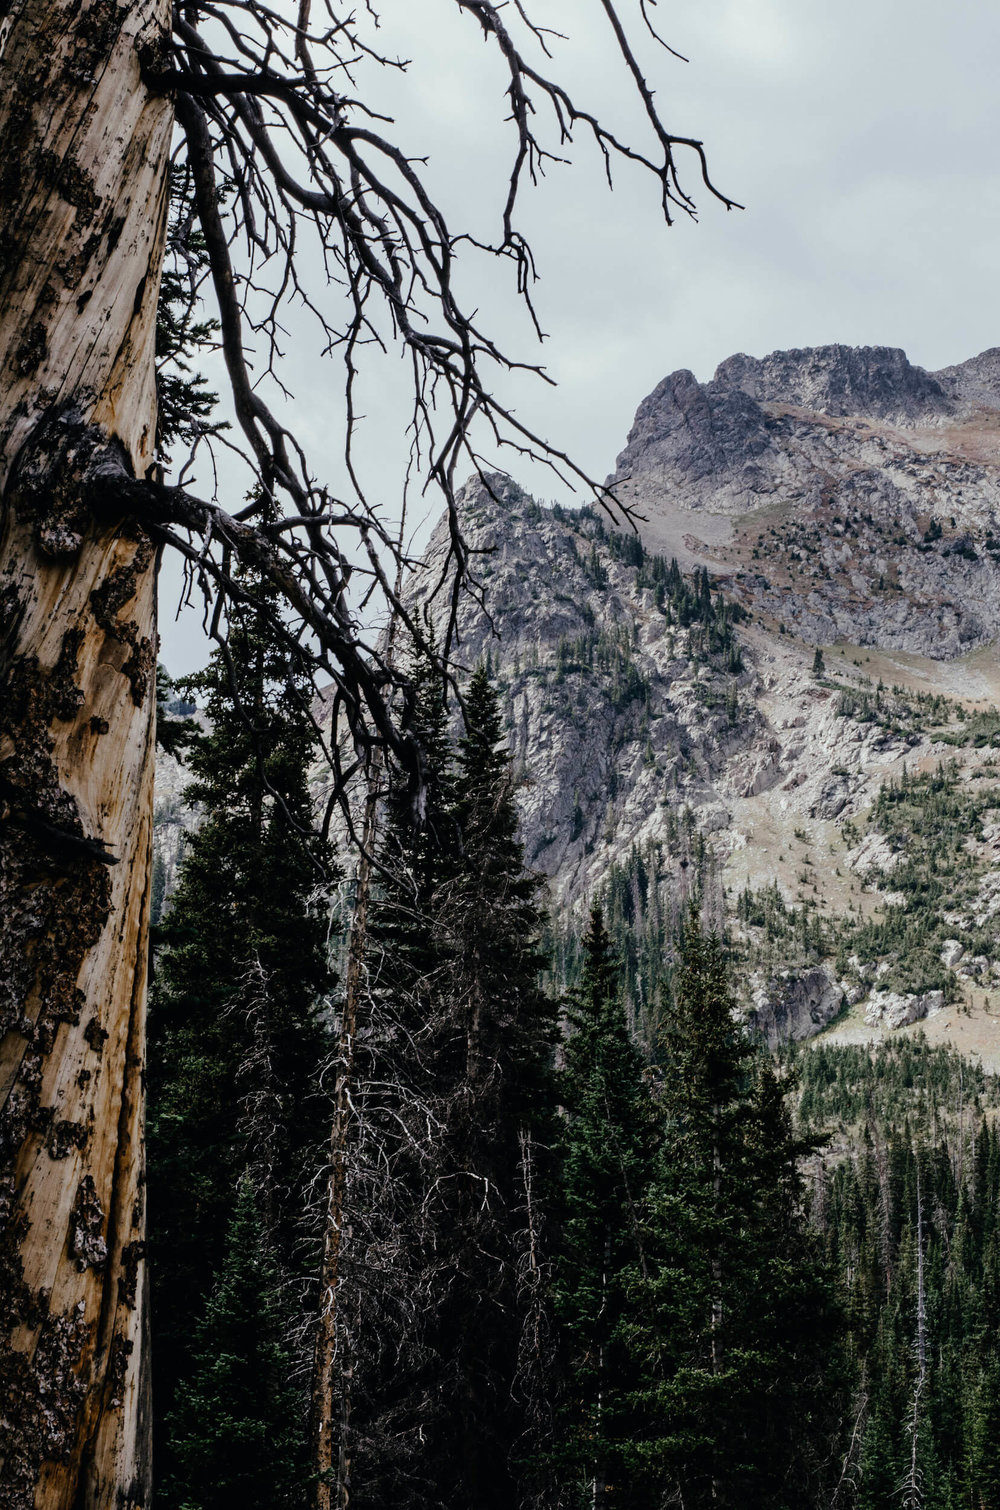 Nohku Crags near Cameron Pass in Northern Colorado